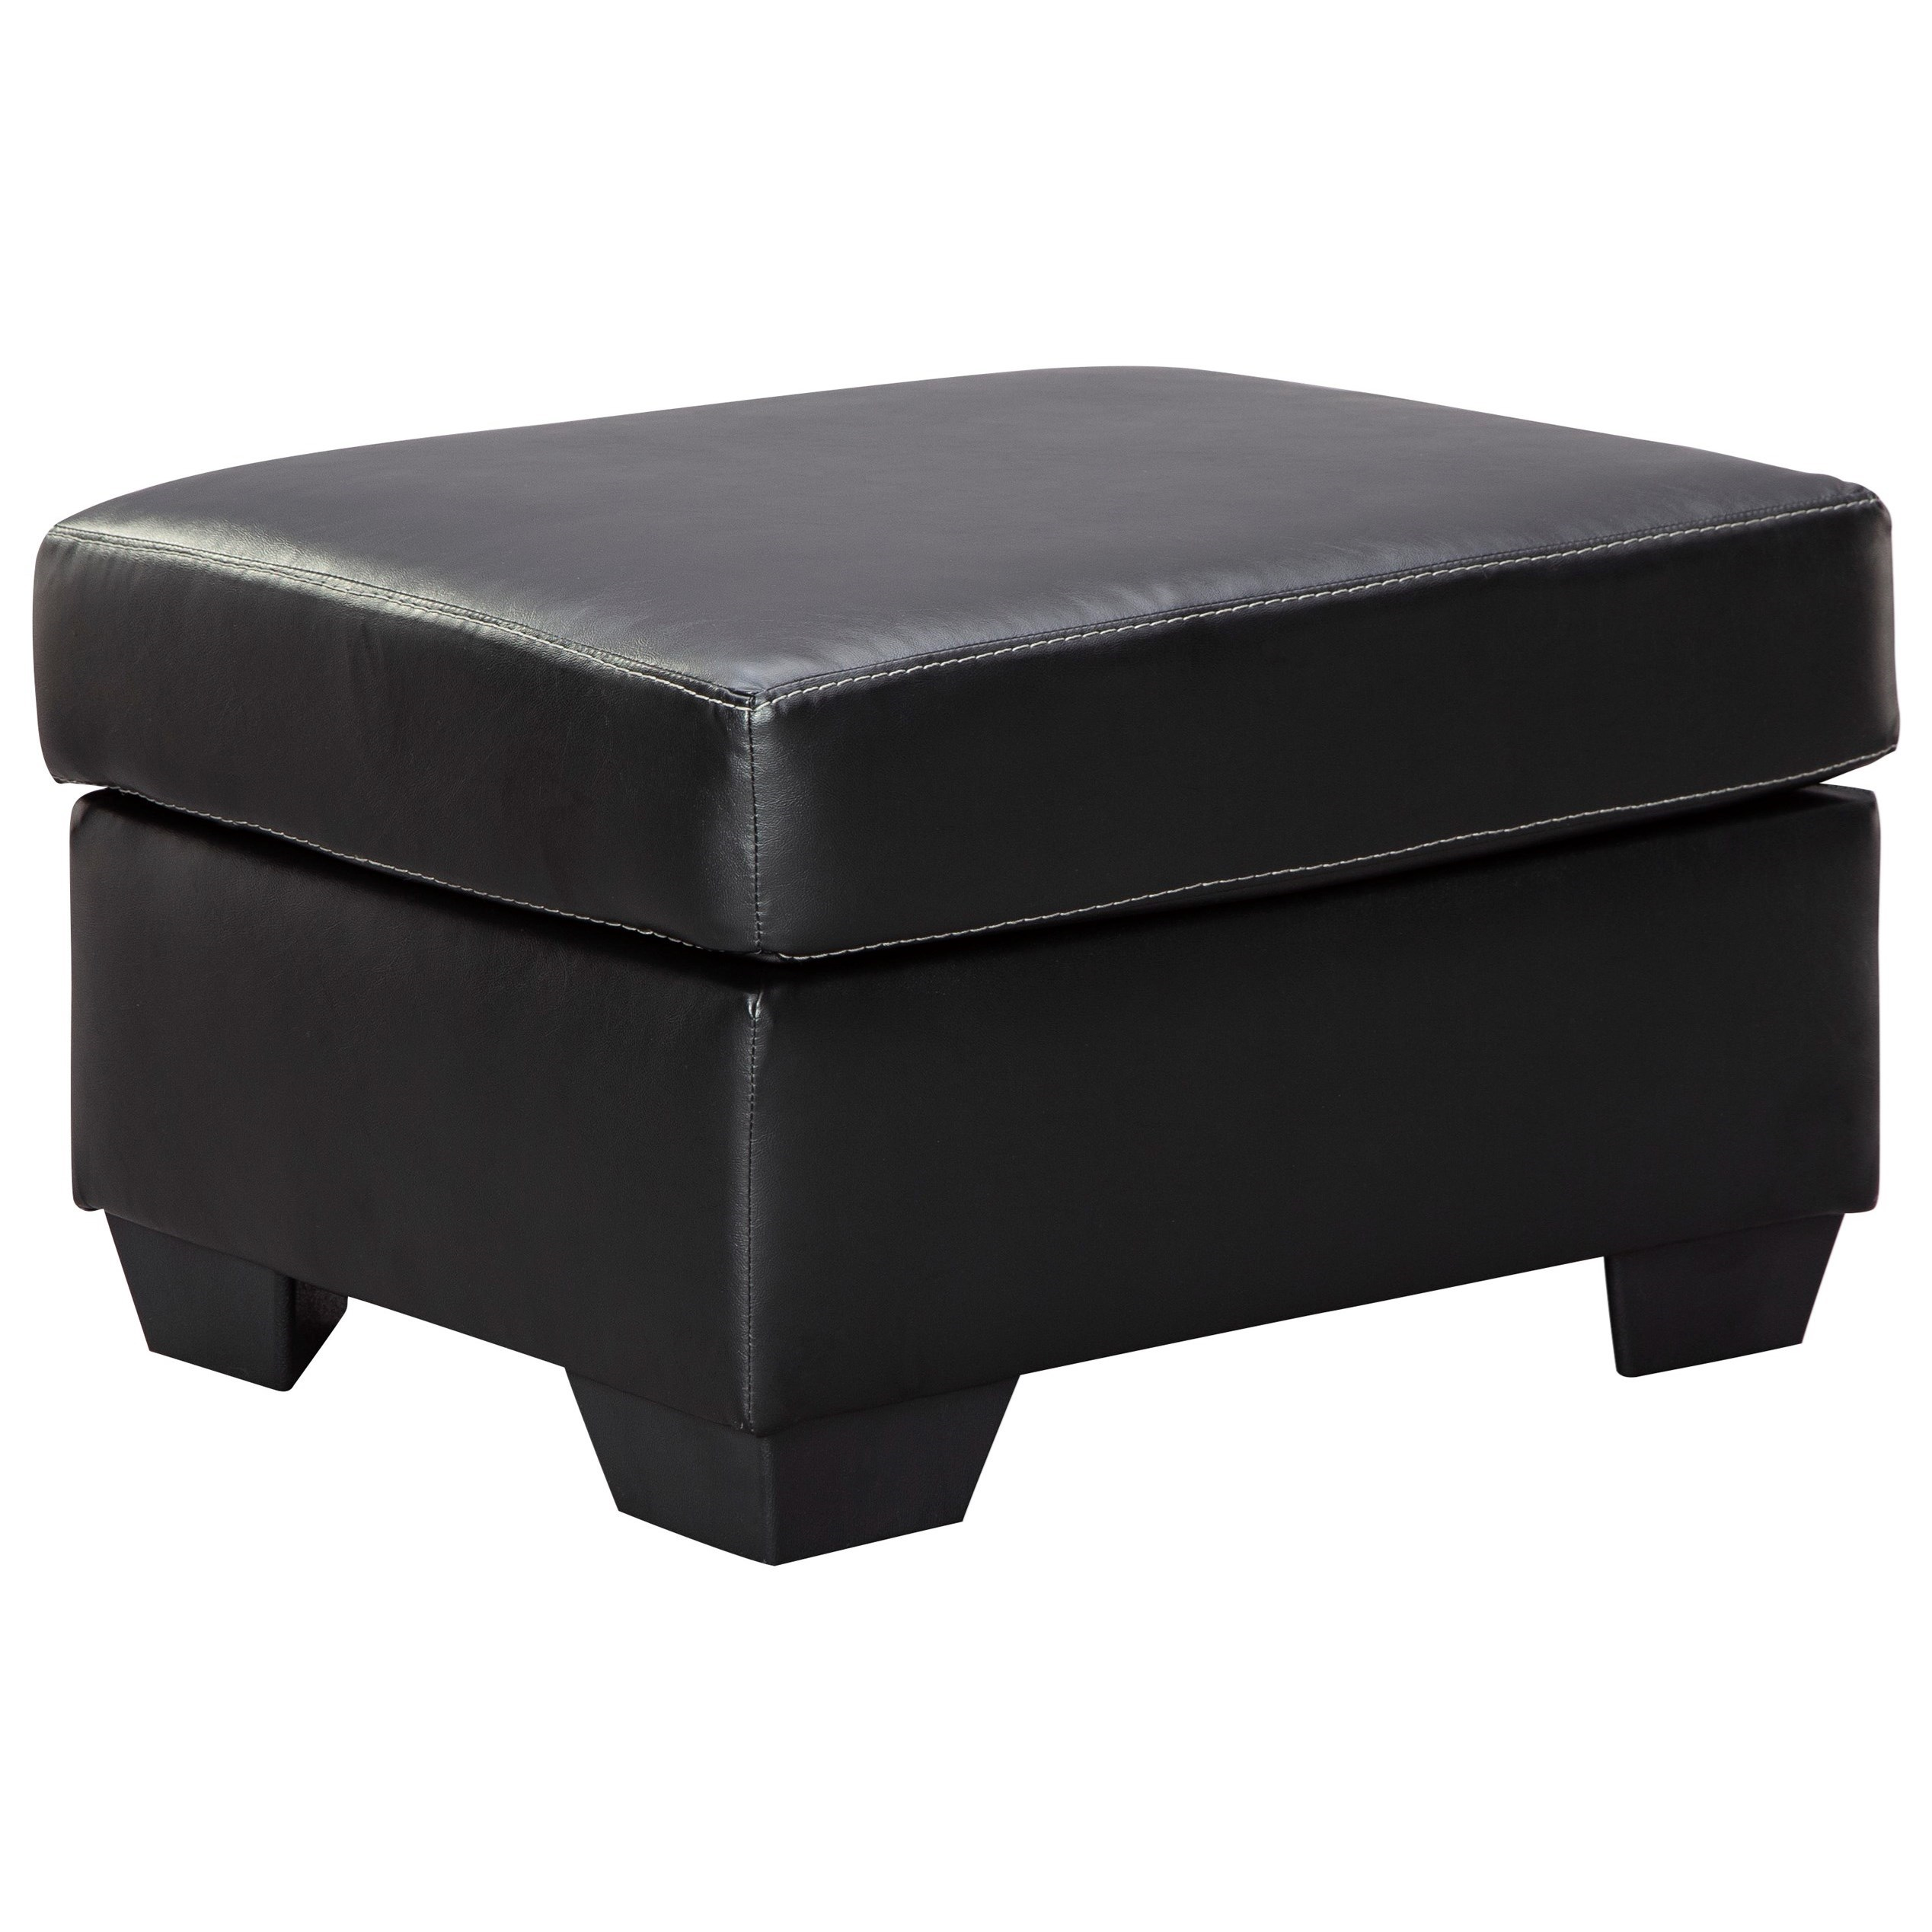 Betrillo Ottoman by Signature Design by Ashley at Northeast Factory Direct